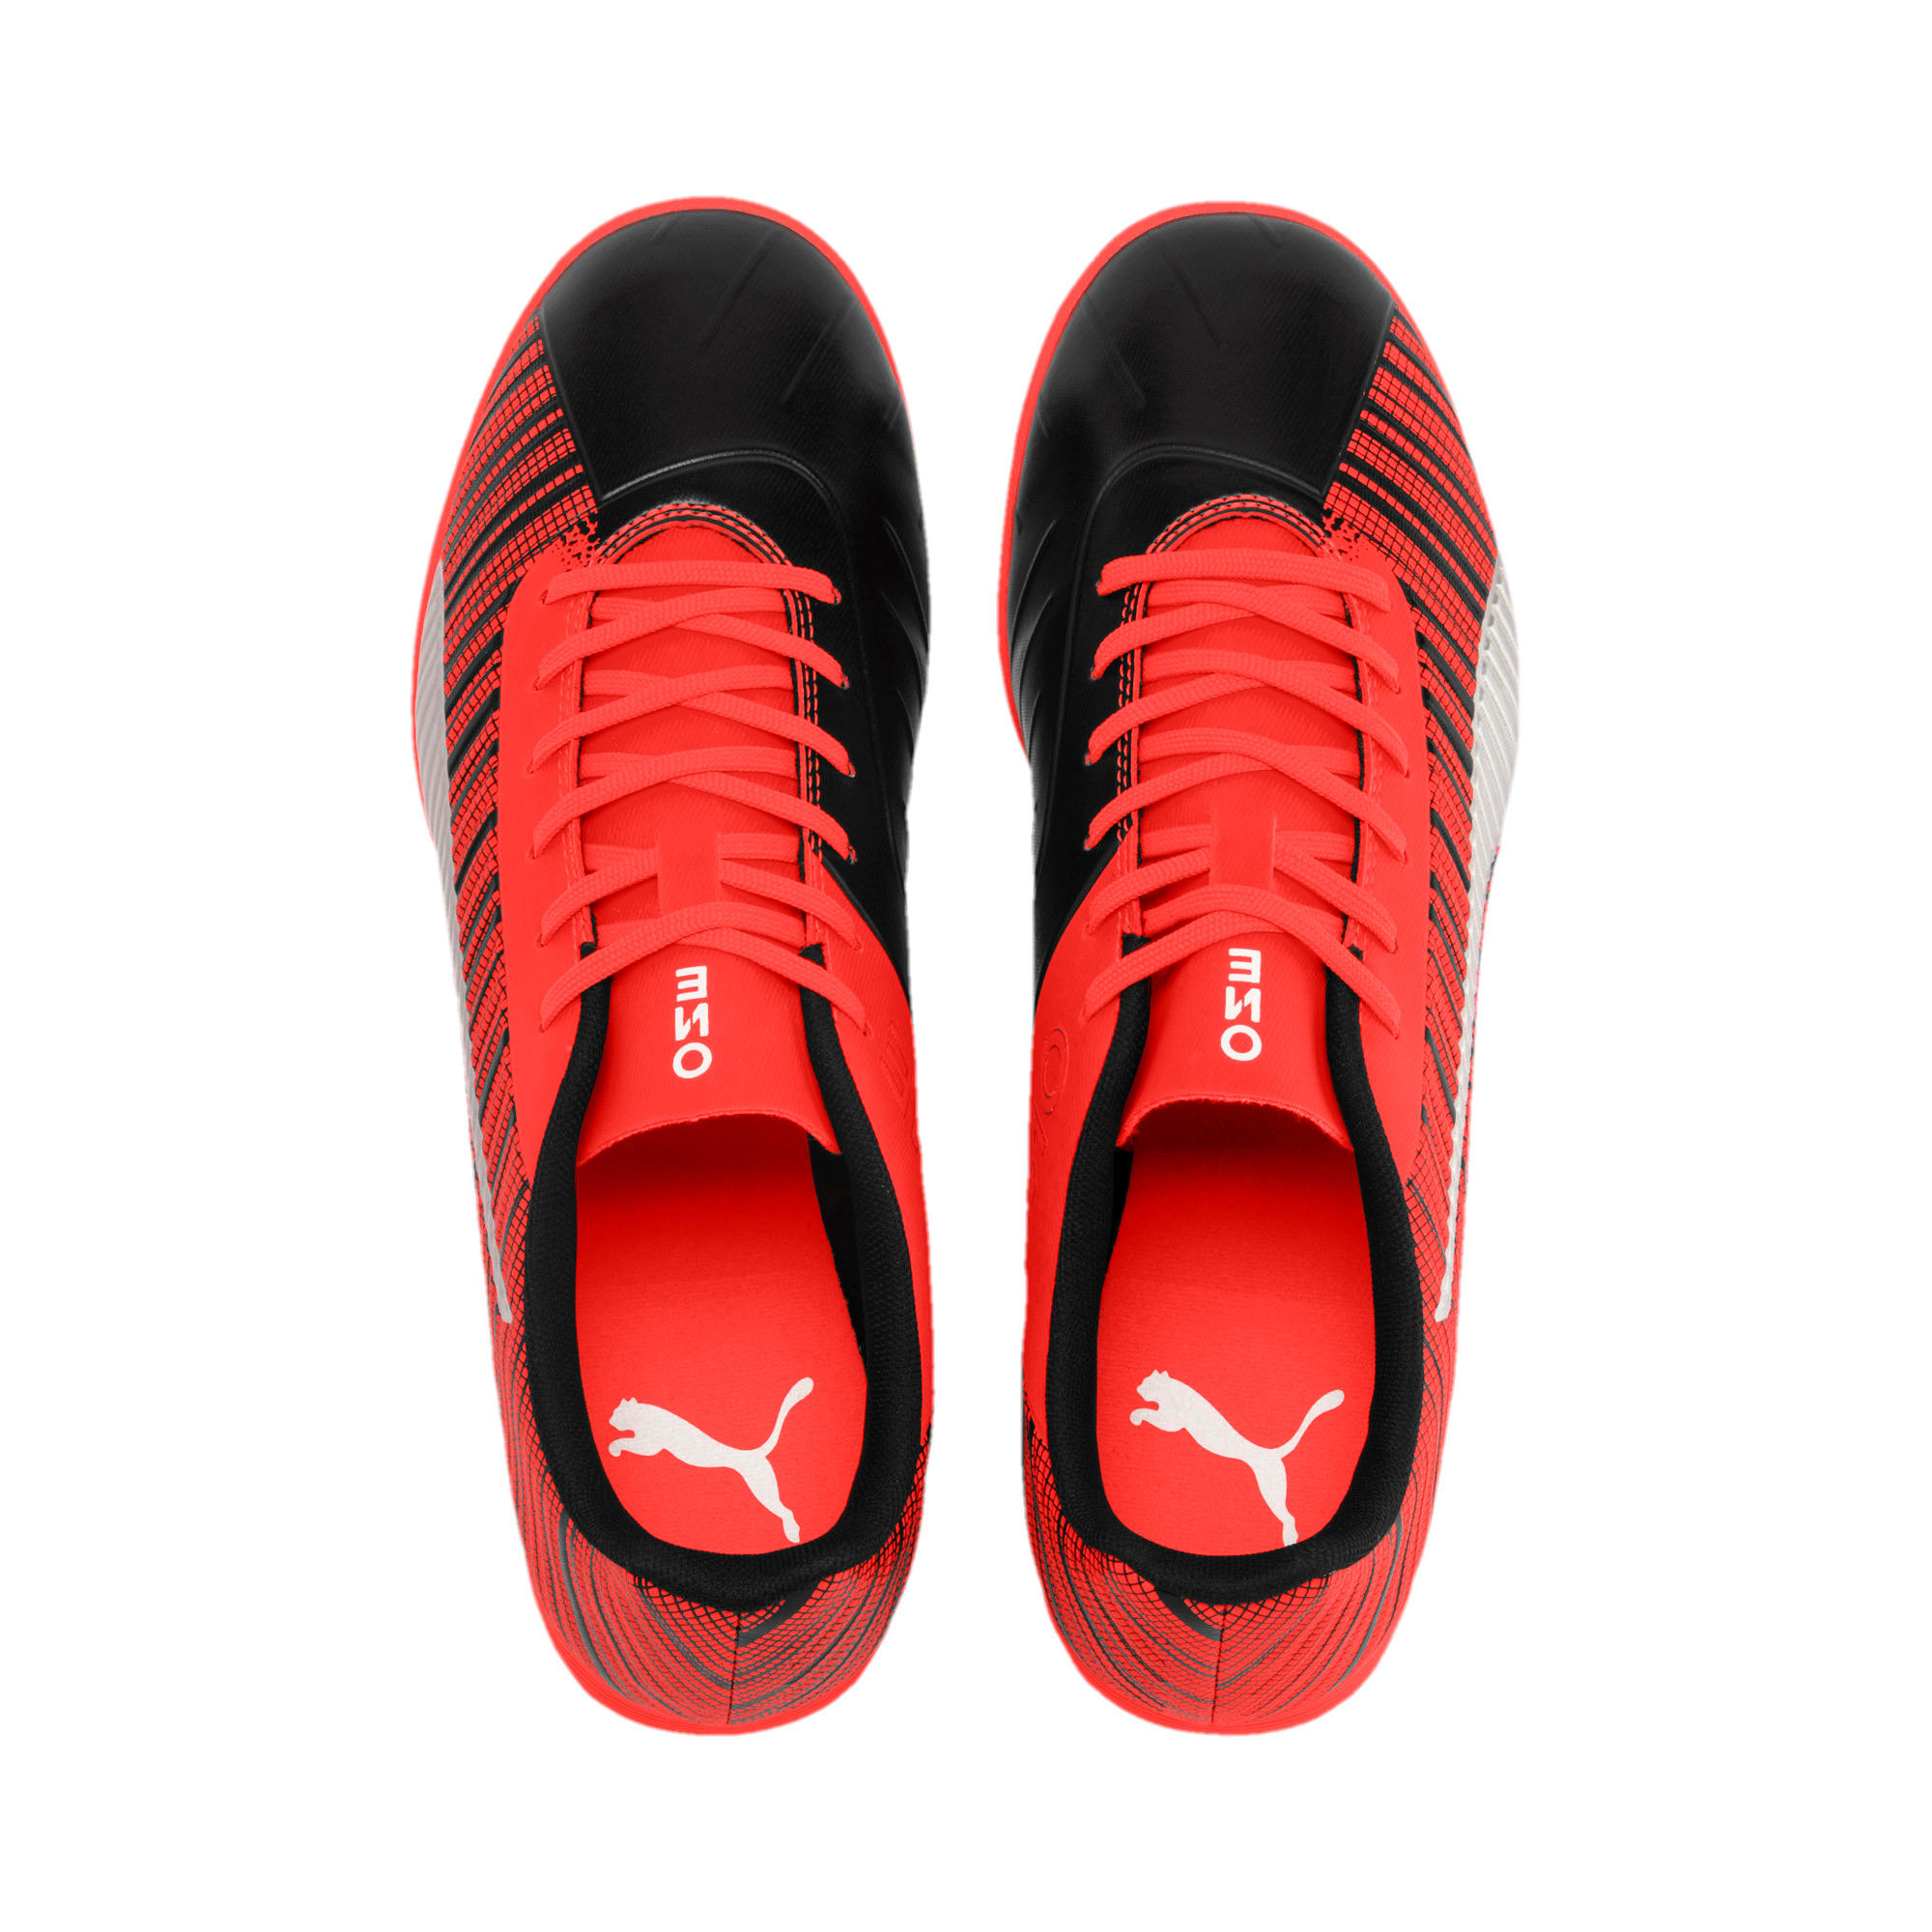 Thumbnail 7 of PUMA ONE 5.4 IT Men's Soccer Shoes, Black-Nrgy Red-Aged Silver, medium